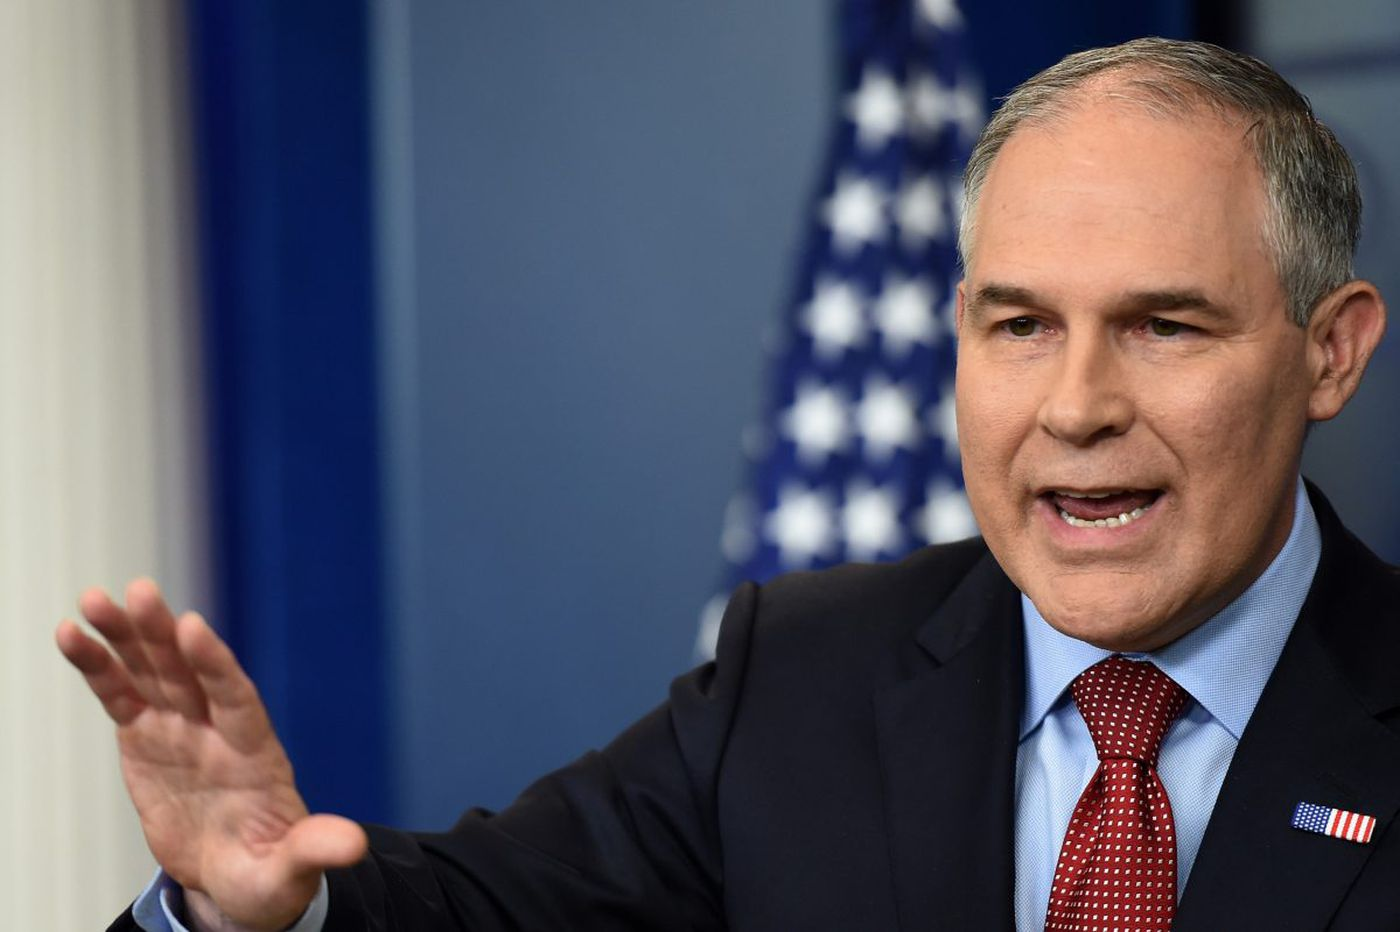 EPA heeds industry over its own staffers